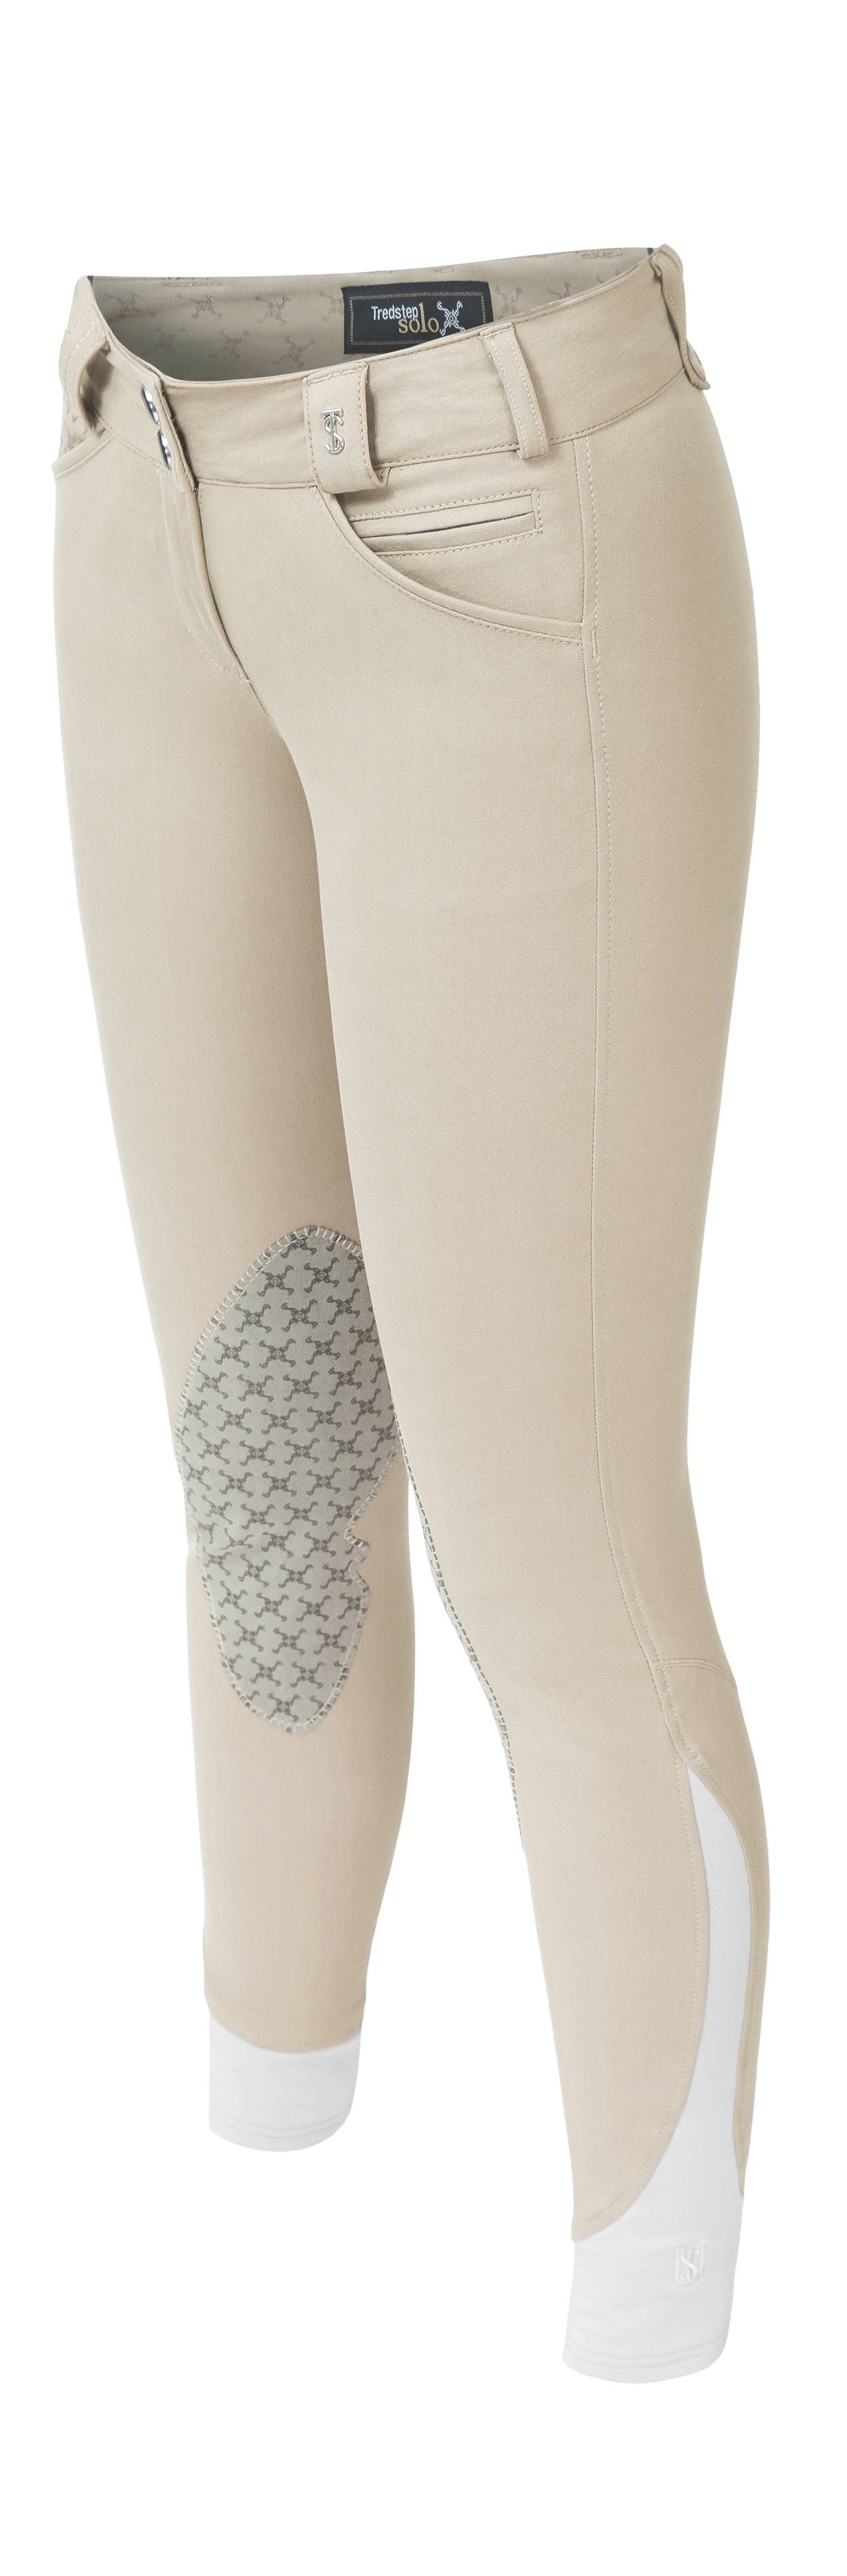 Tredstep Solo Grip Knee Patch Breech